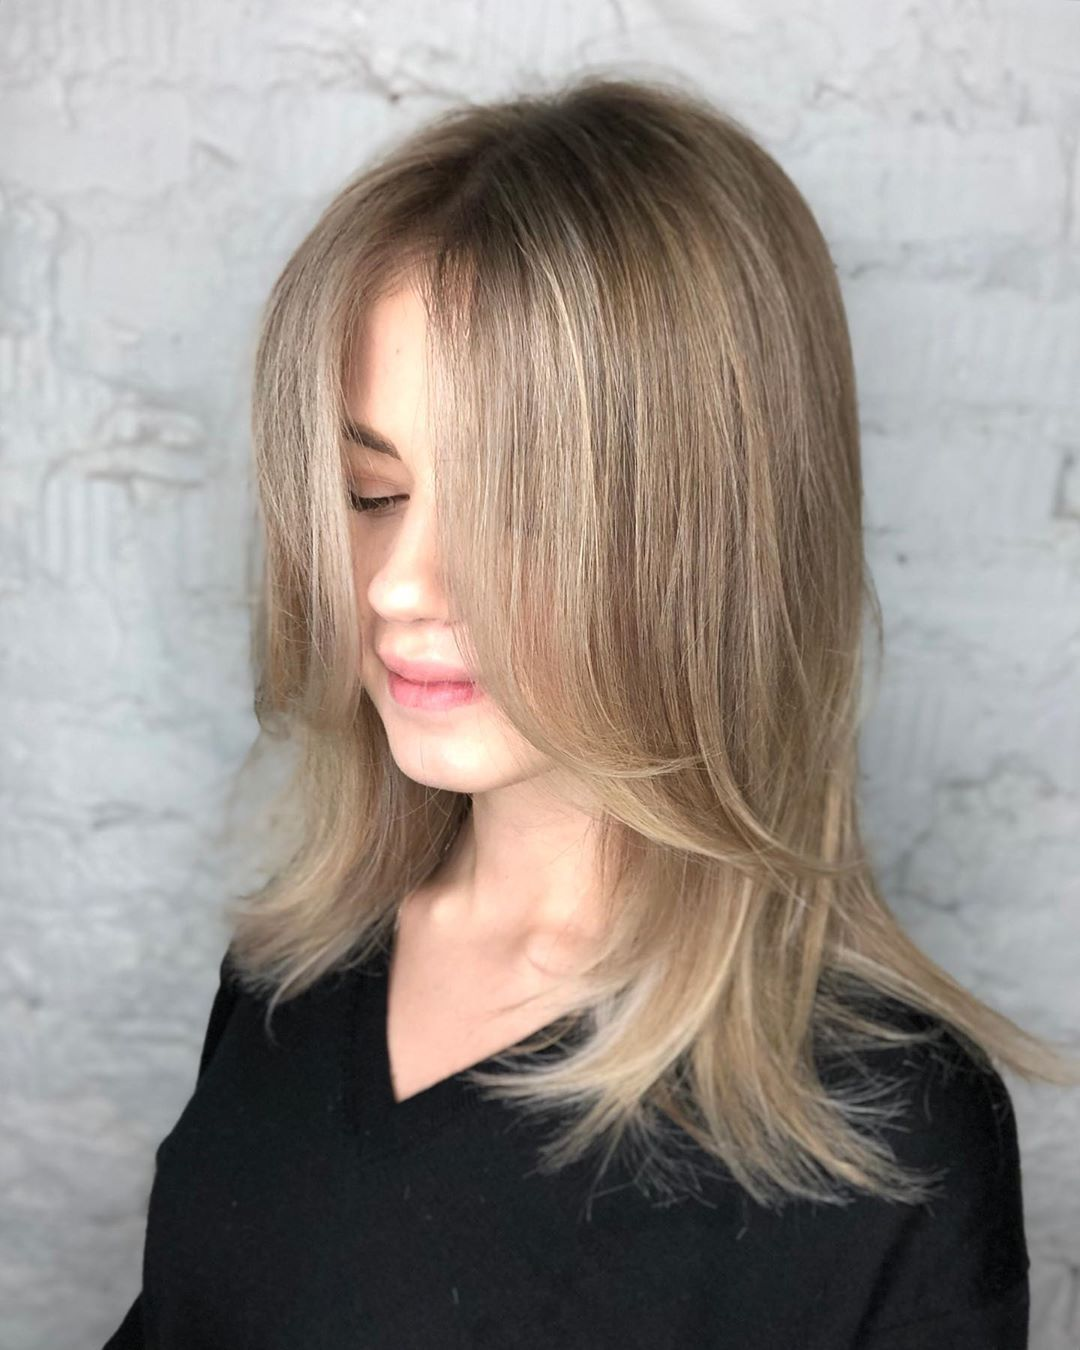 50 Best Layered Haircuts And Hairstyles For 2020 Hair Adviser In 2020 Layered Haircuts Long Hair Styles Medium Hair Styles